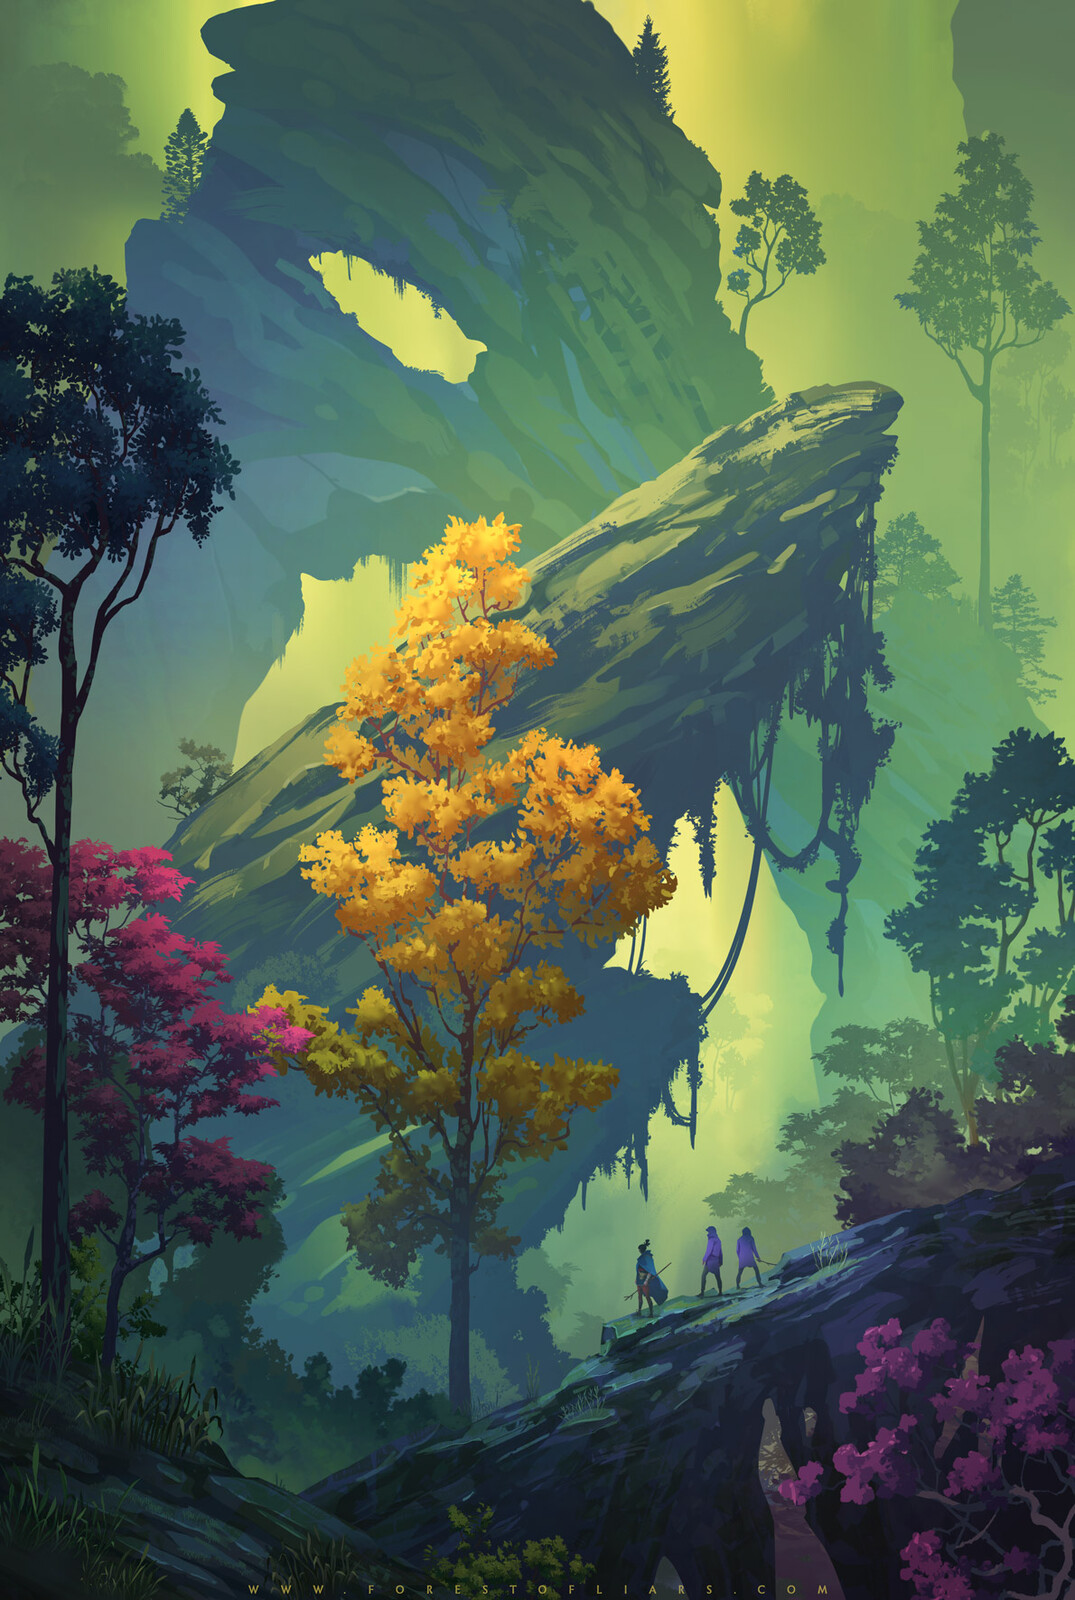 Vegetal Chasm - Forest of Liars